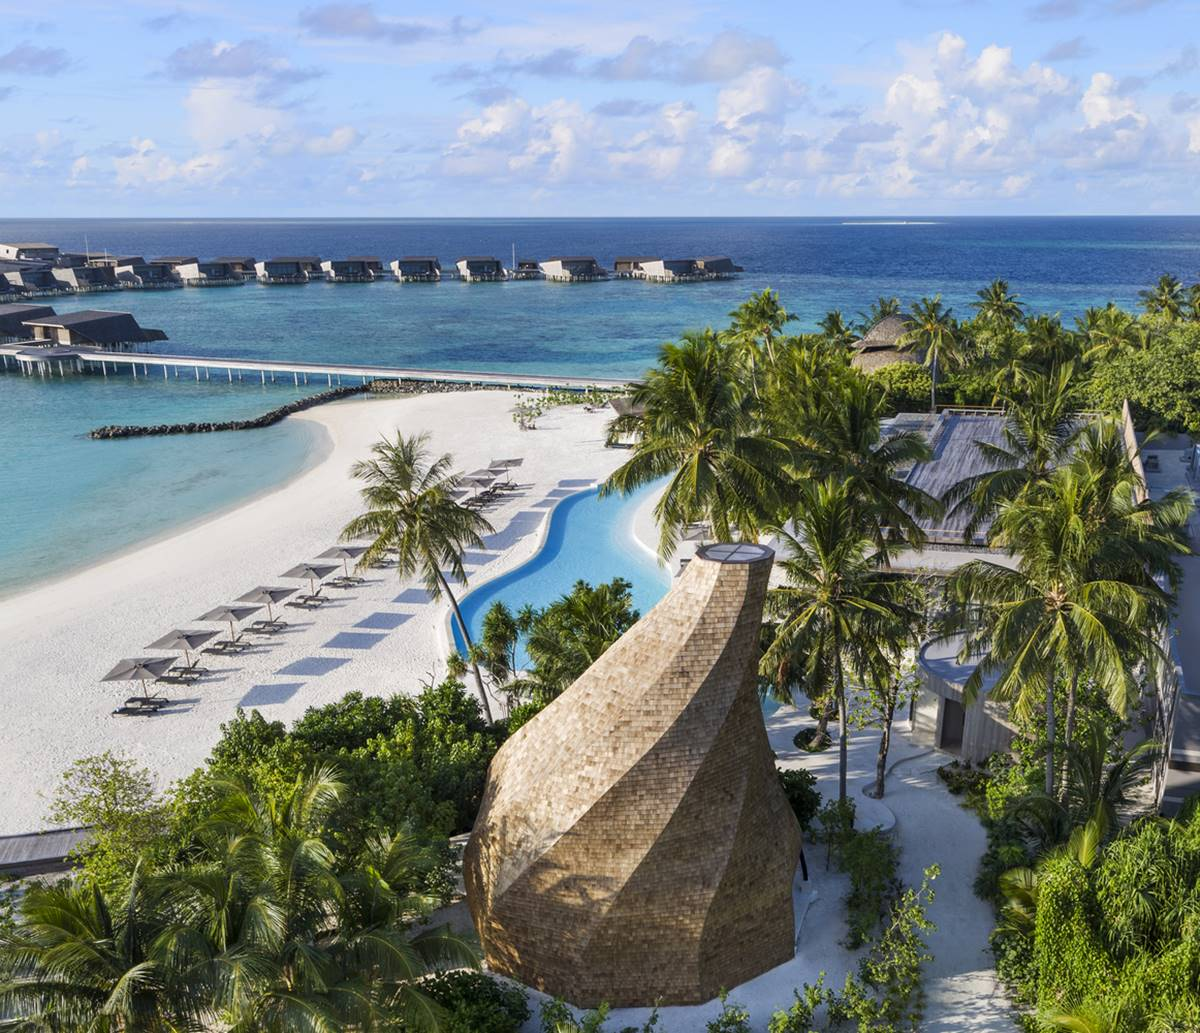 St. Regis Maldives Vommuli Resort - the lagoon